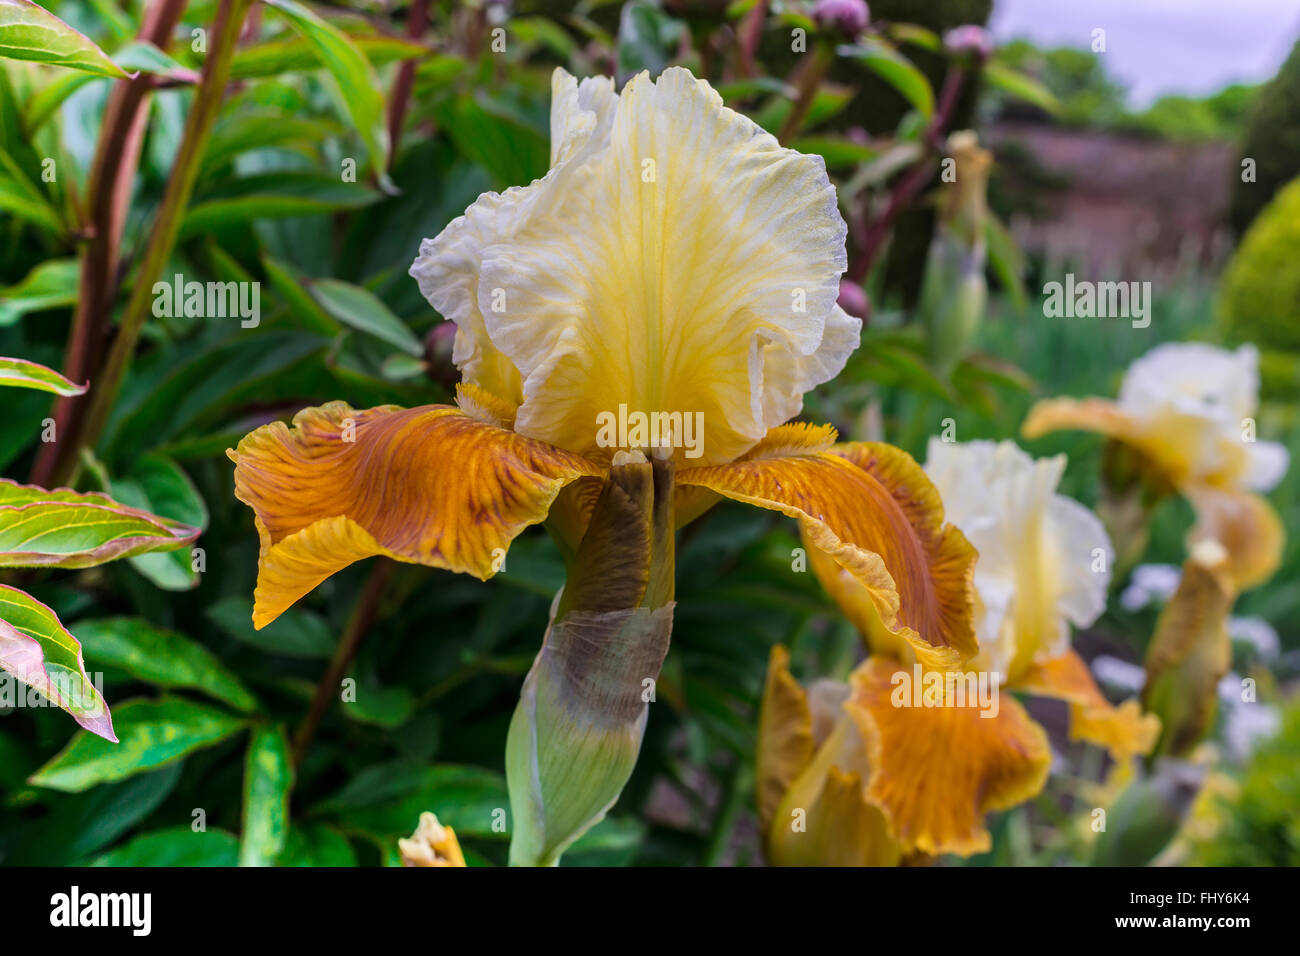 Golden yellow flower of tall bearded iris close-up. - Stock Image